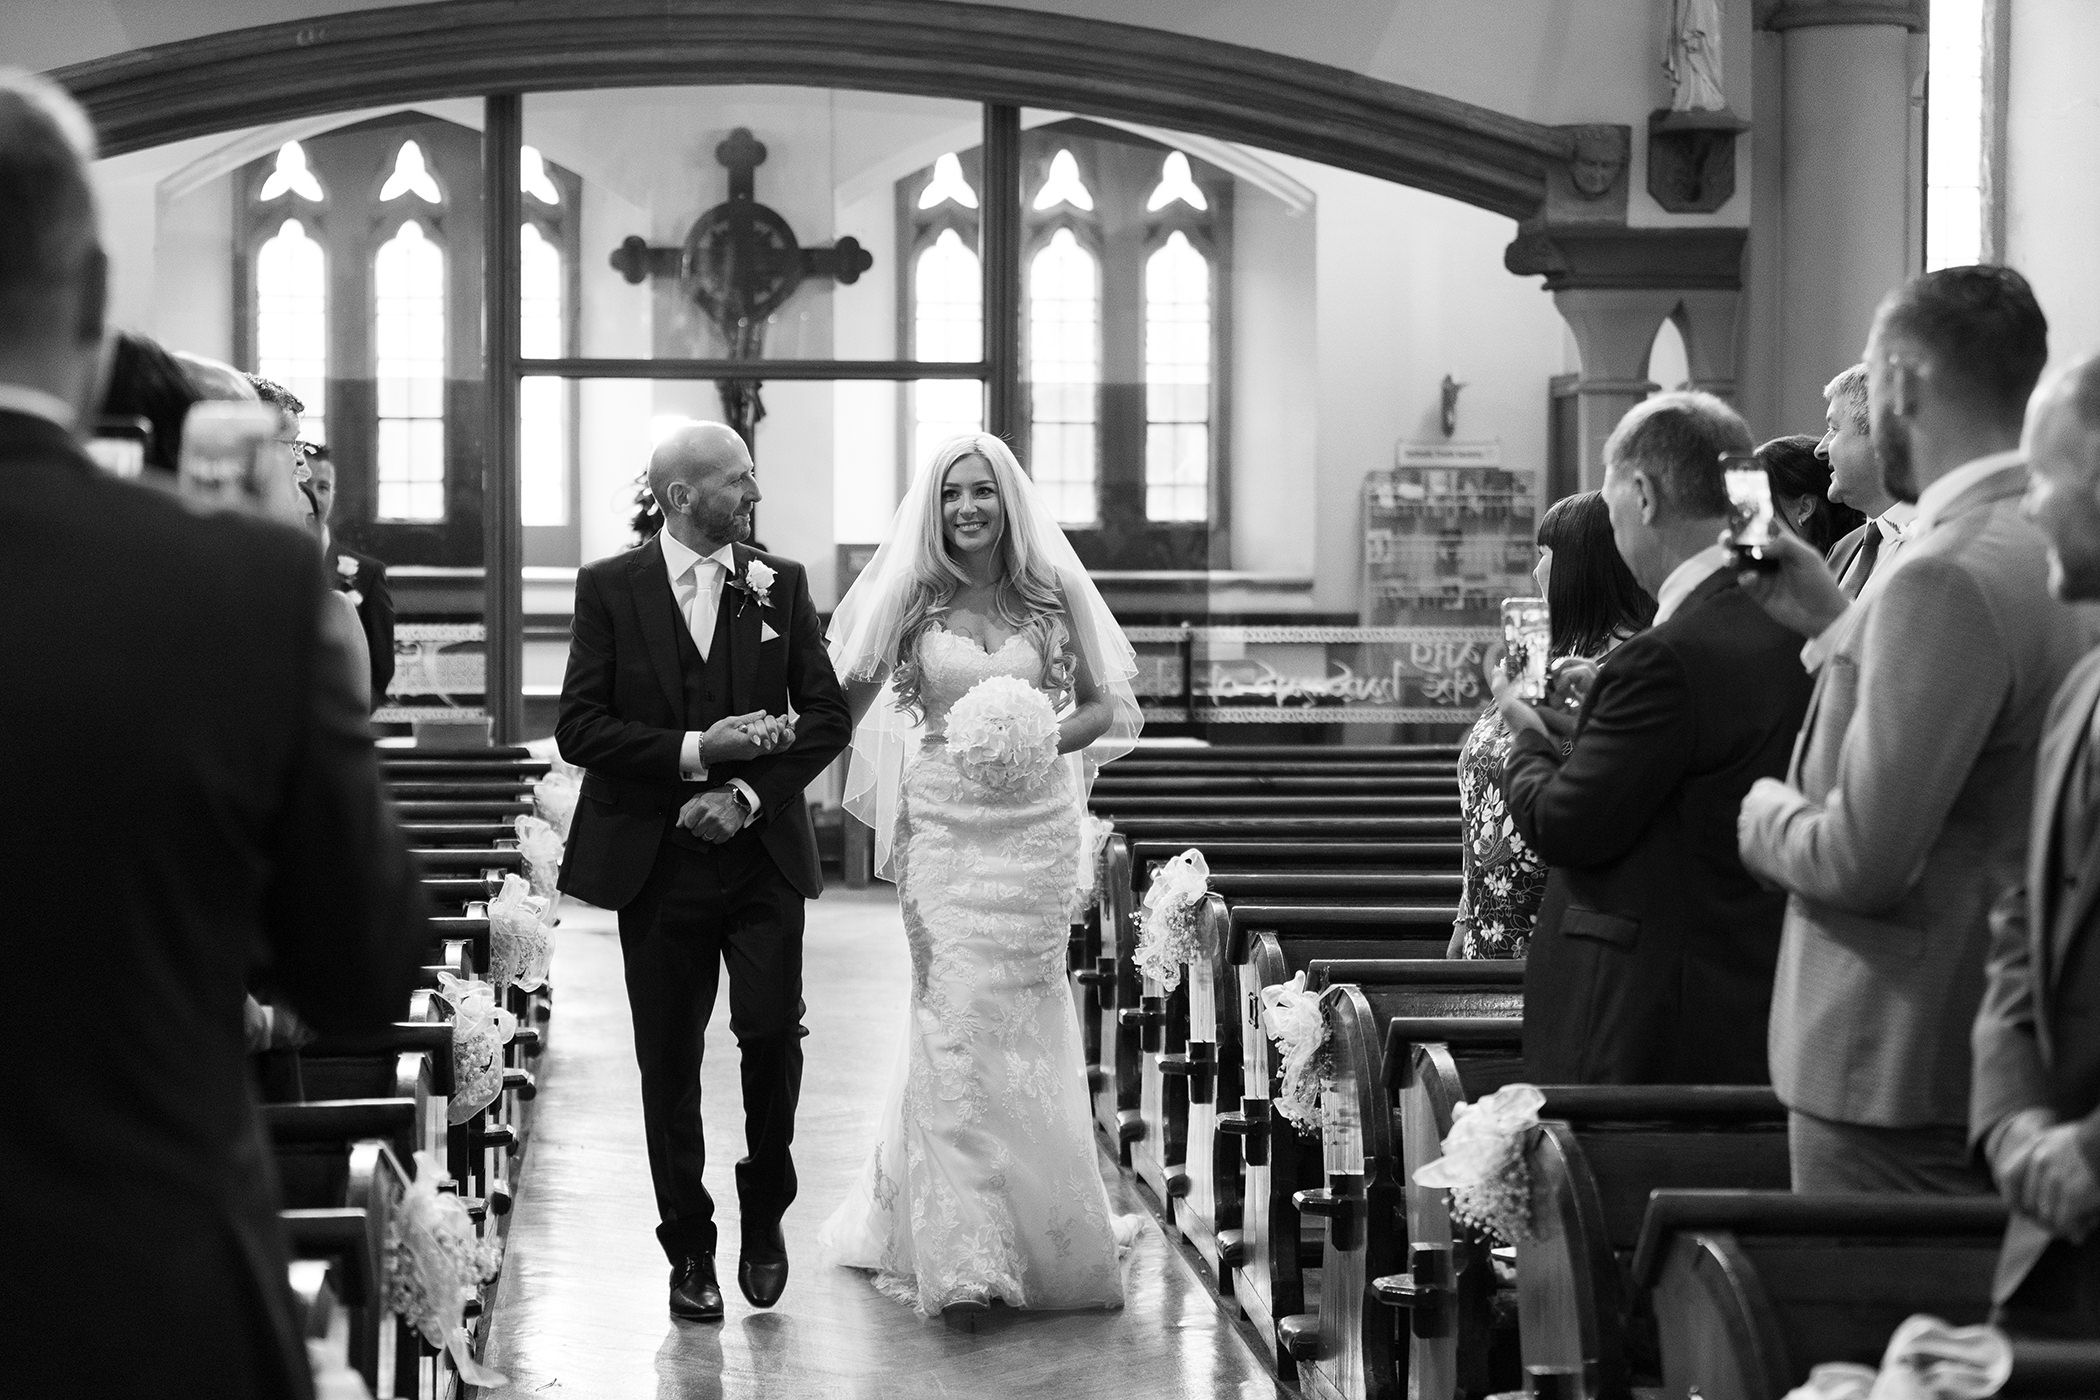 the father of the bride walks down the aisle with his daughter